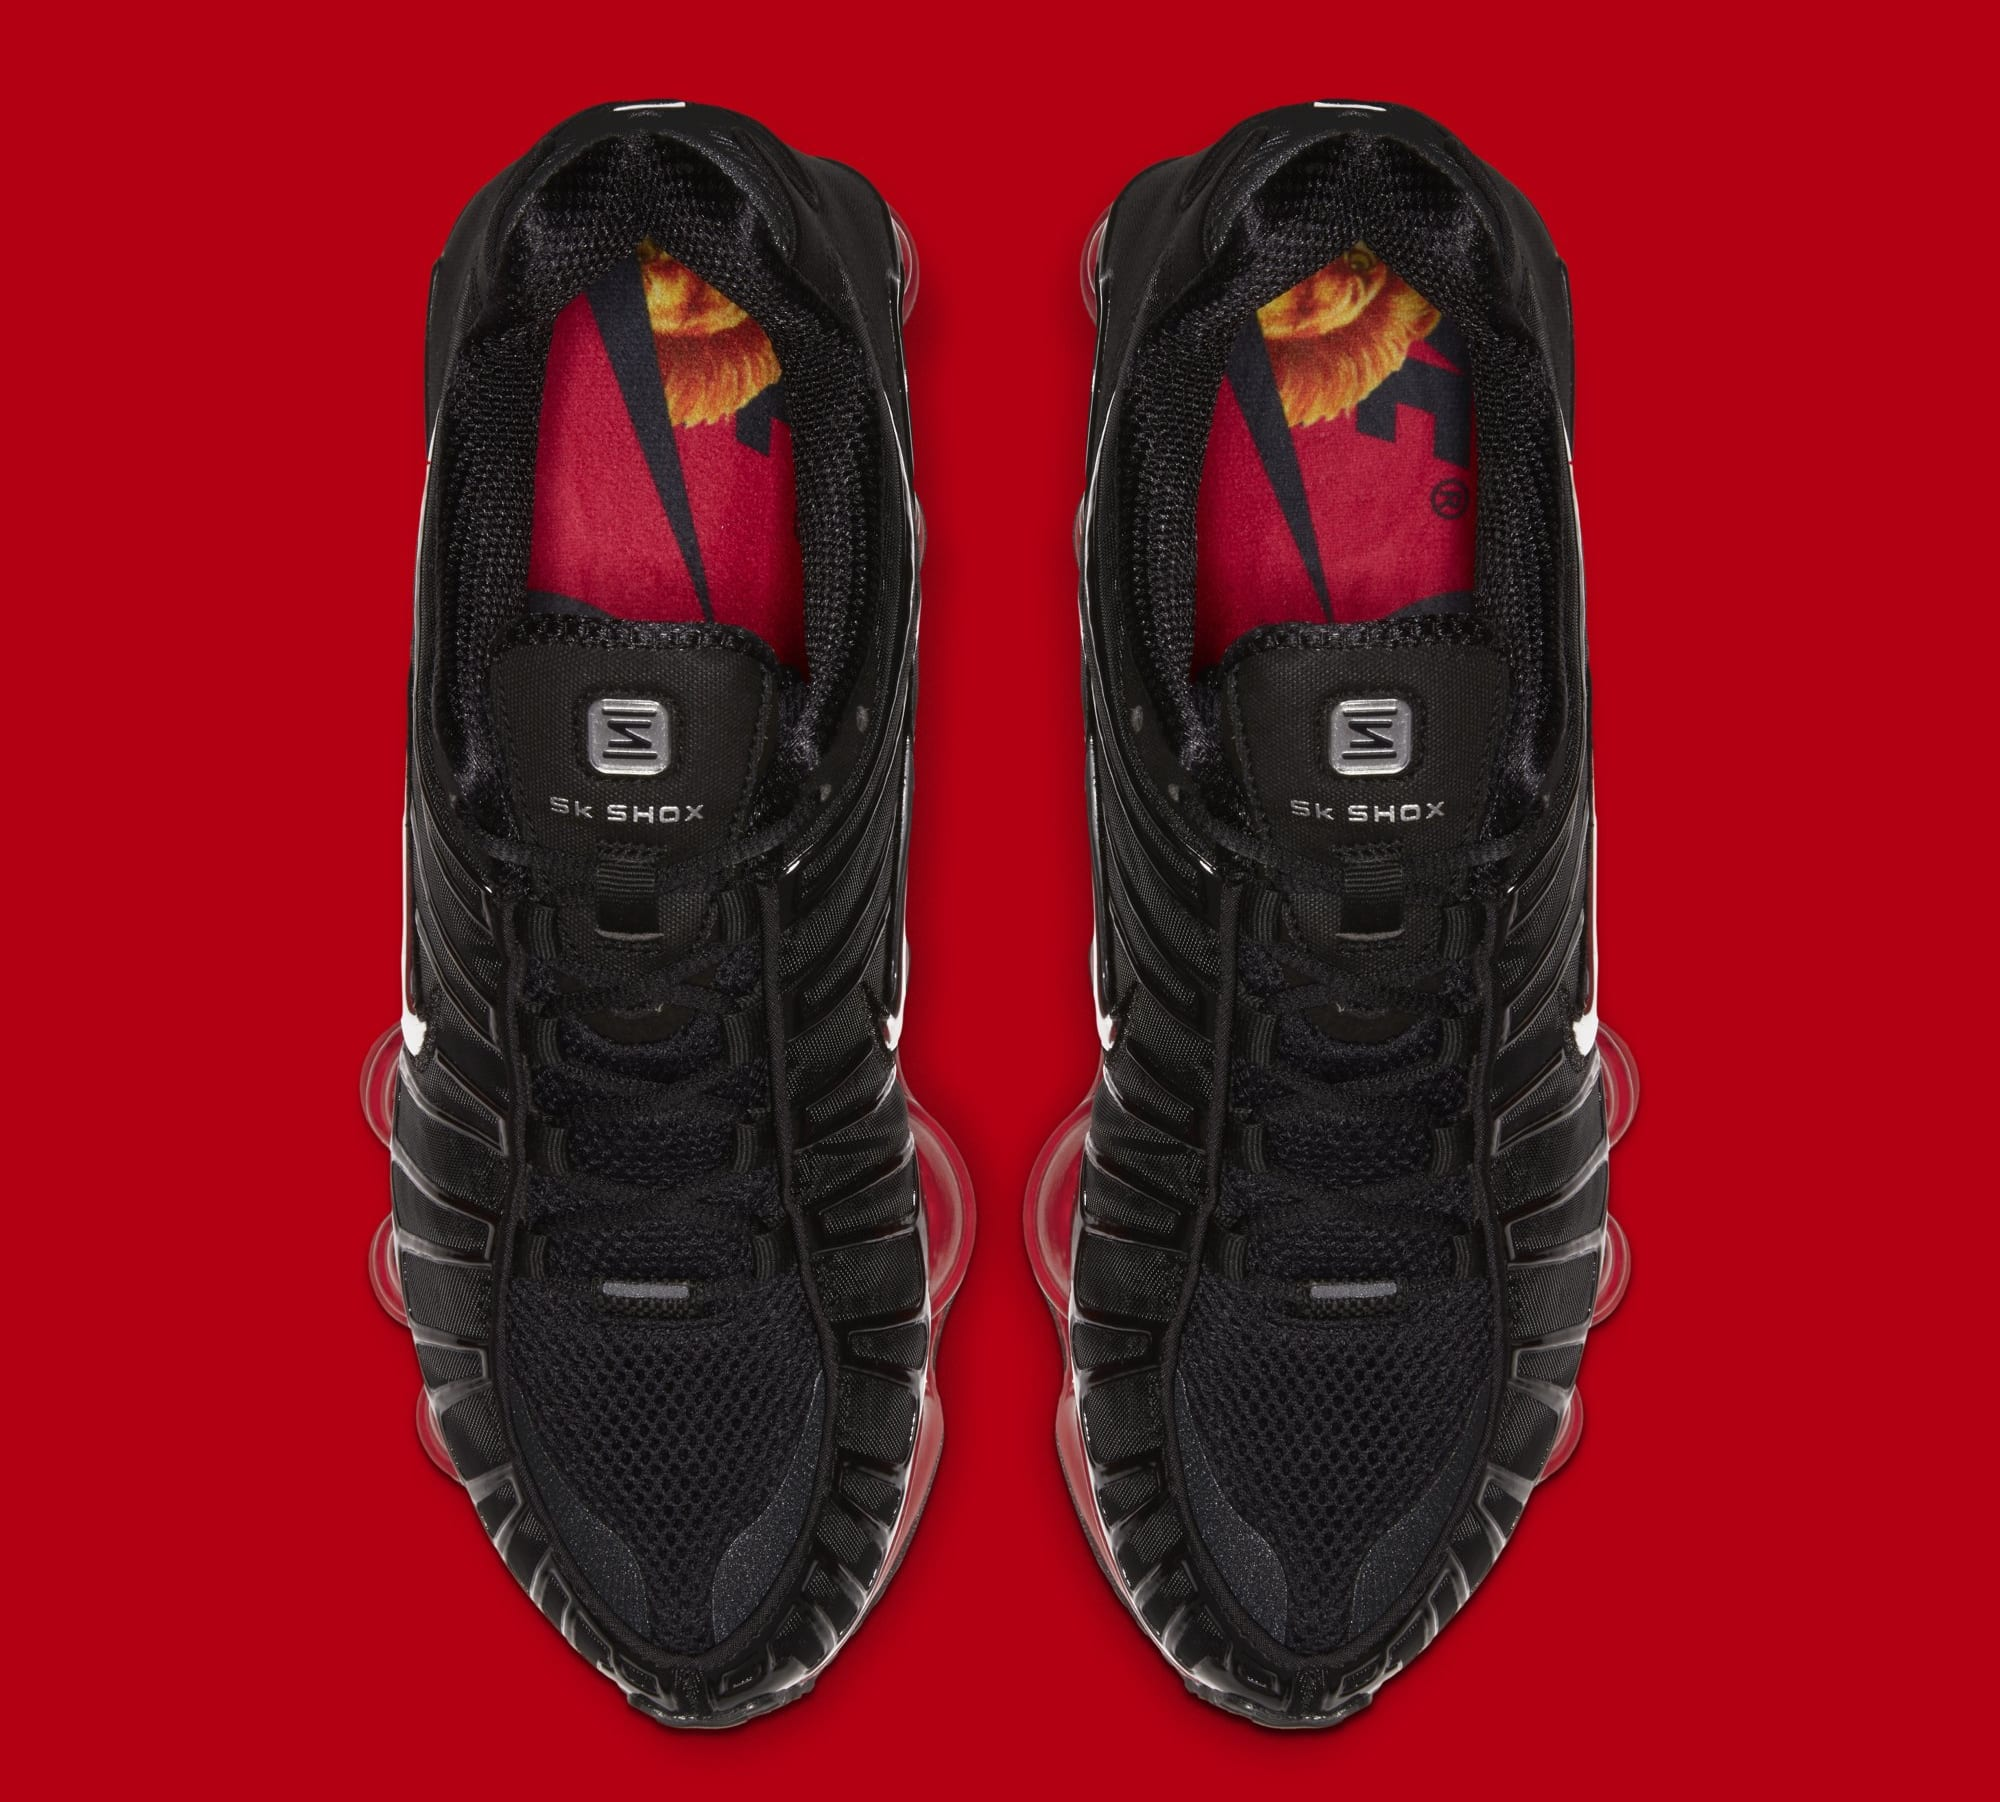 Skepta x Nike Shox TL 'Black/Black/University Red' CI0987-001 (Top)